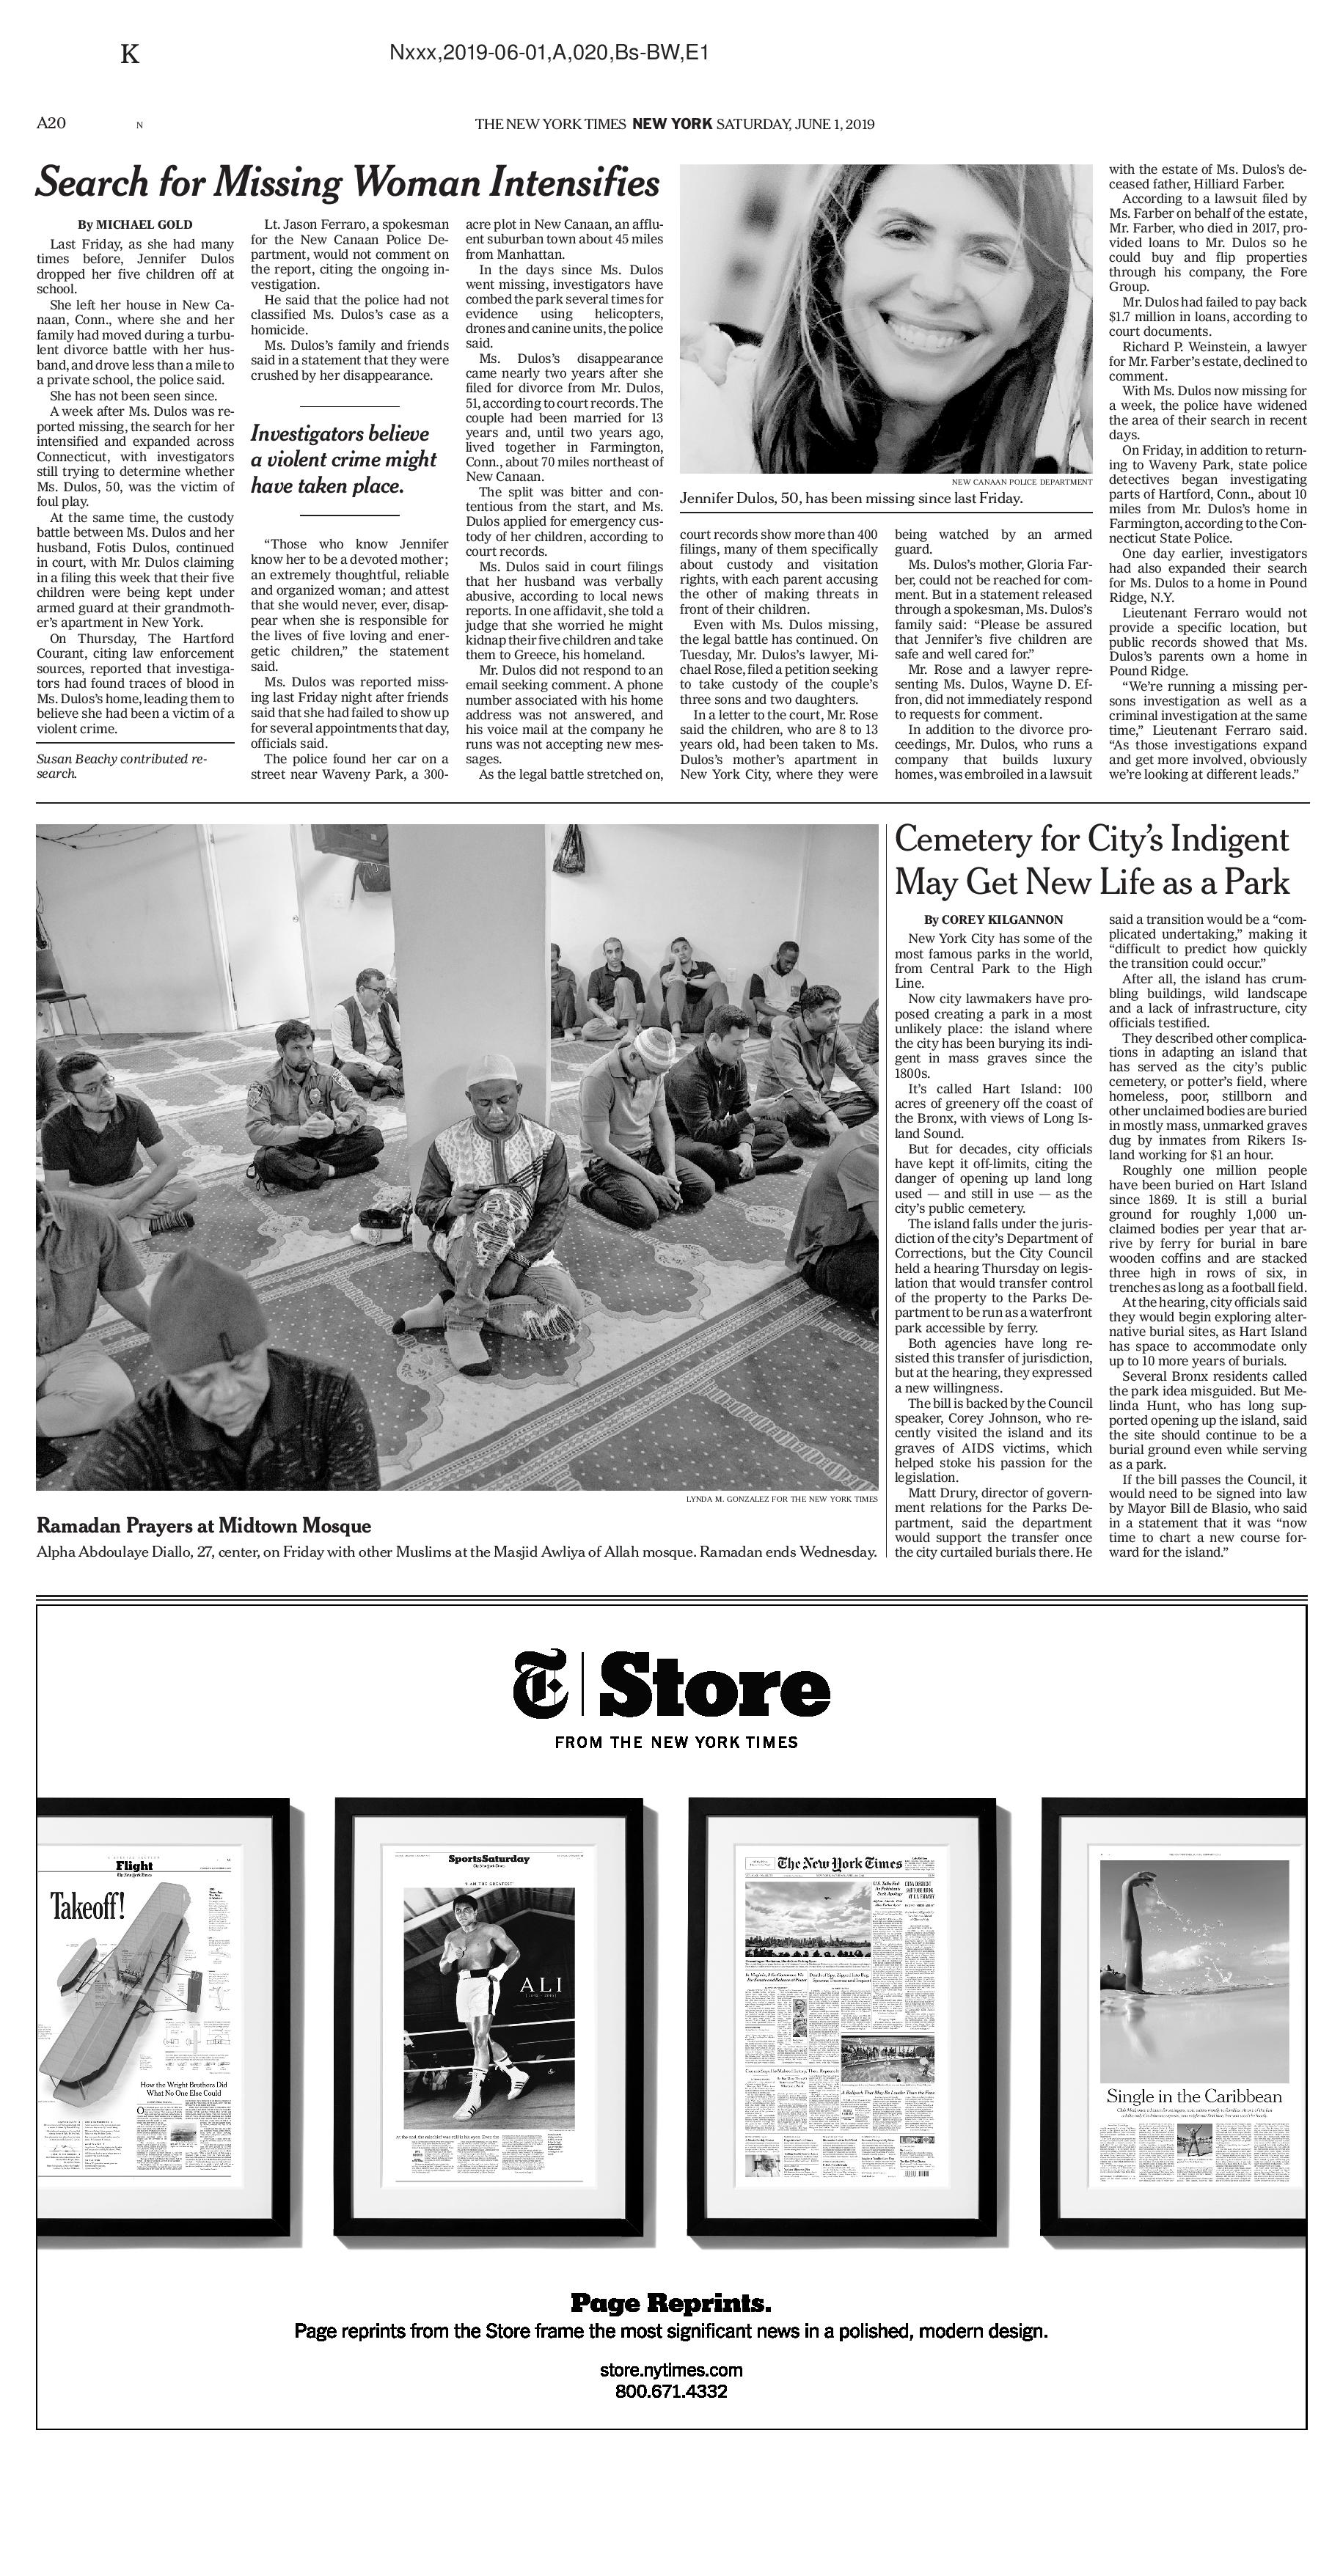 nyt tearsheet-page-001.jpg